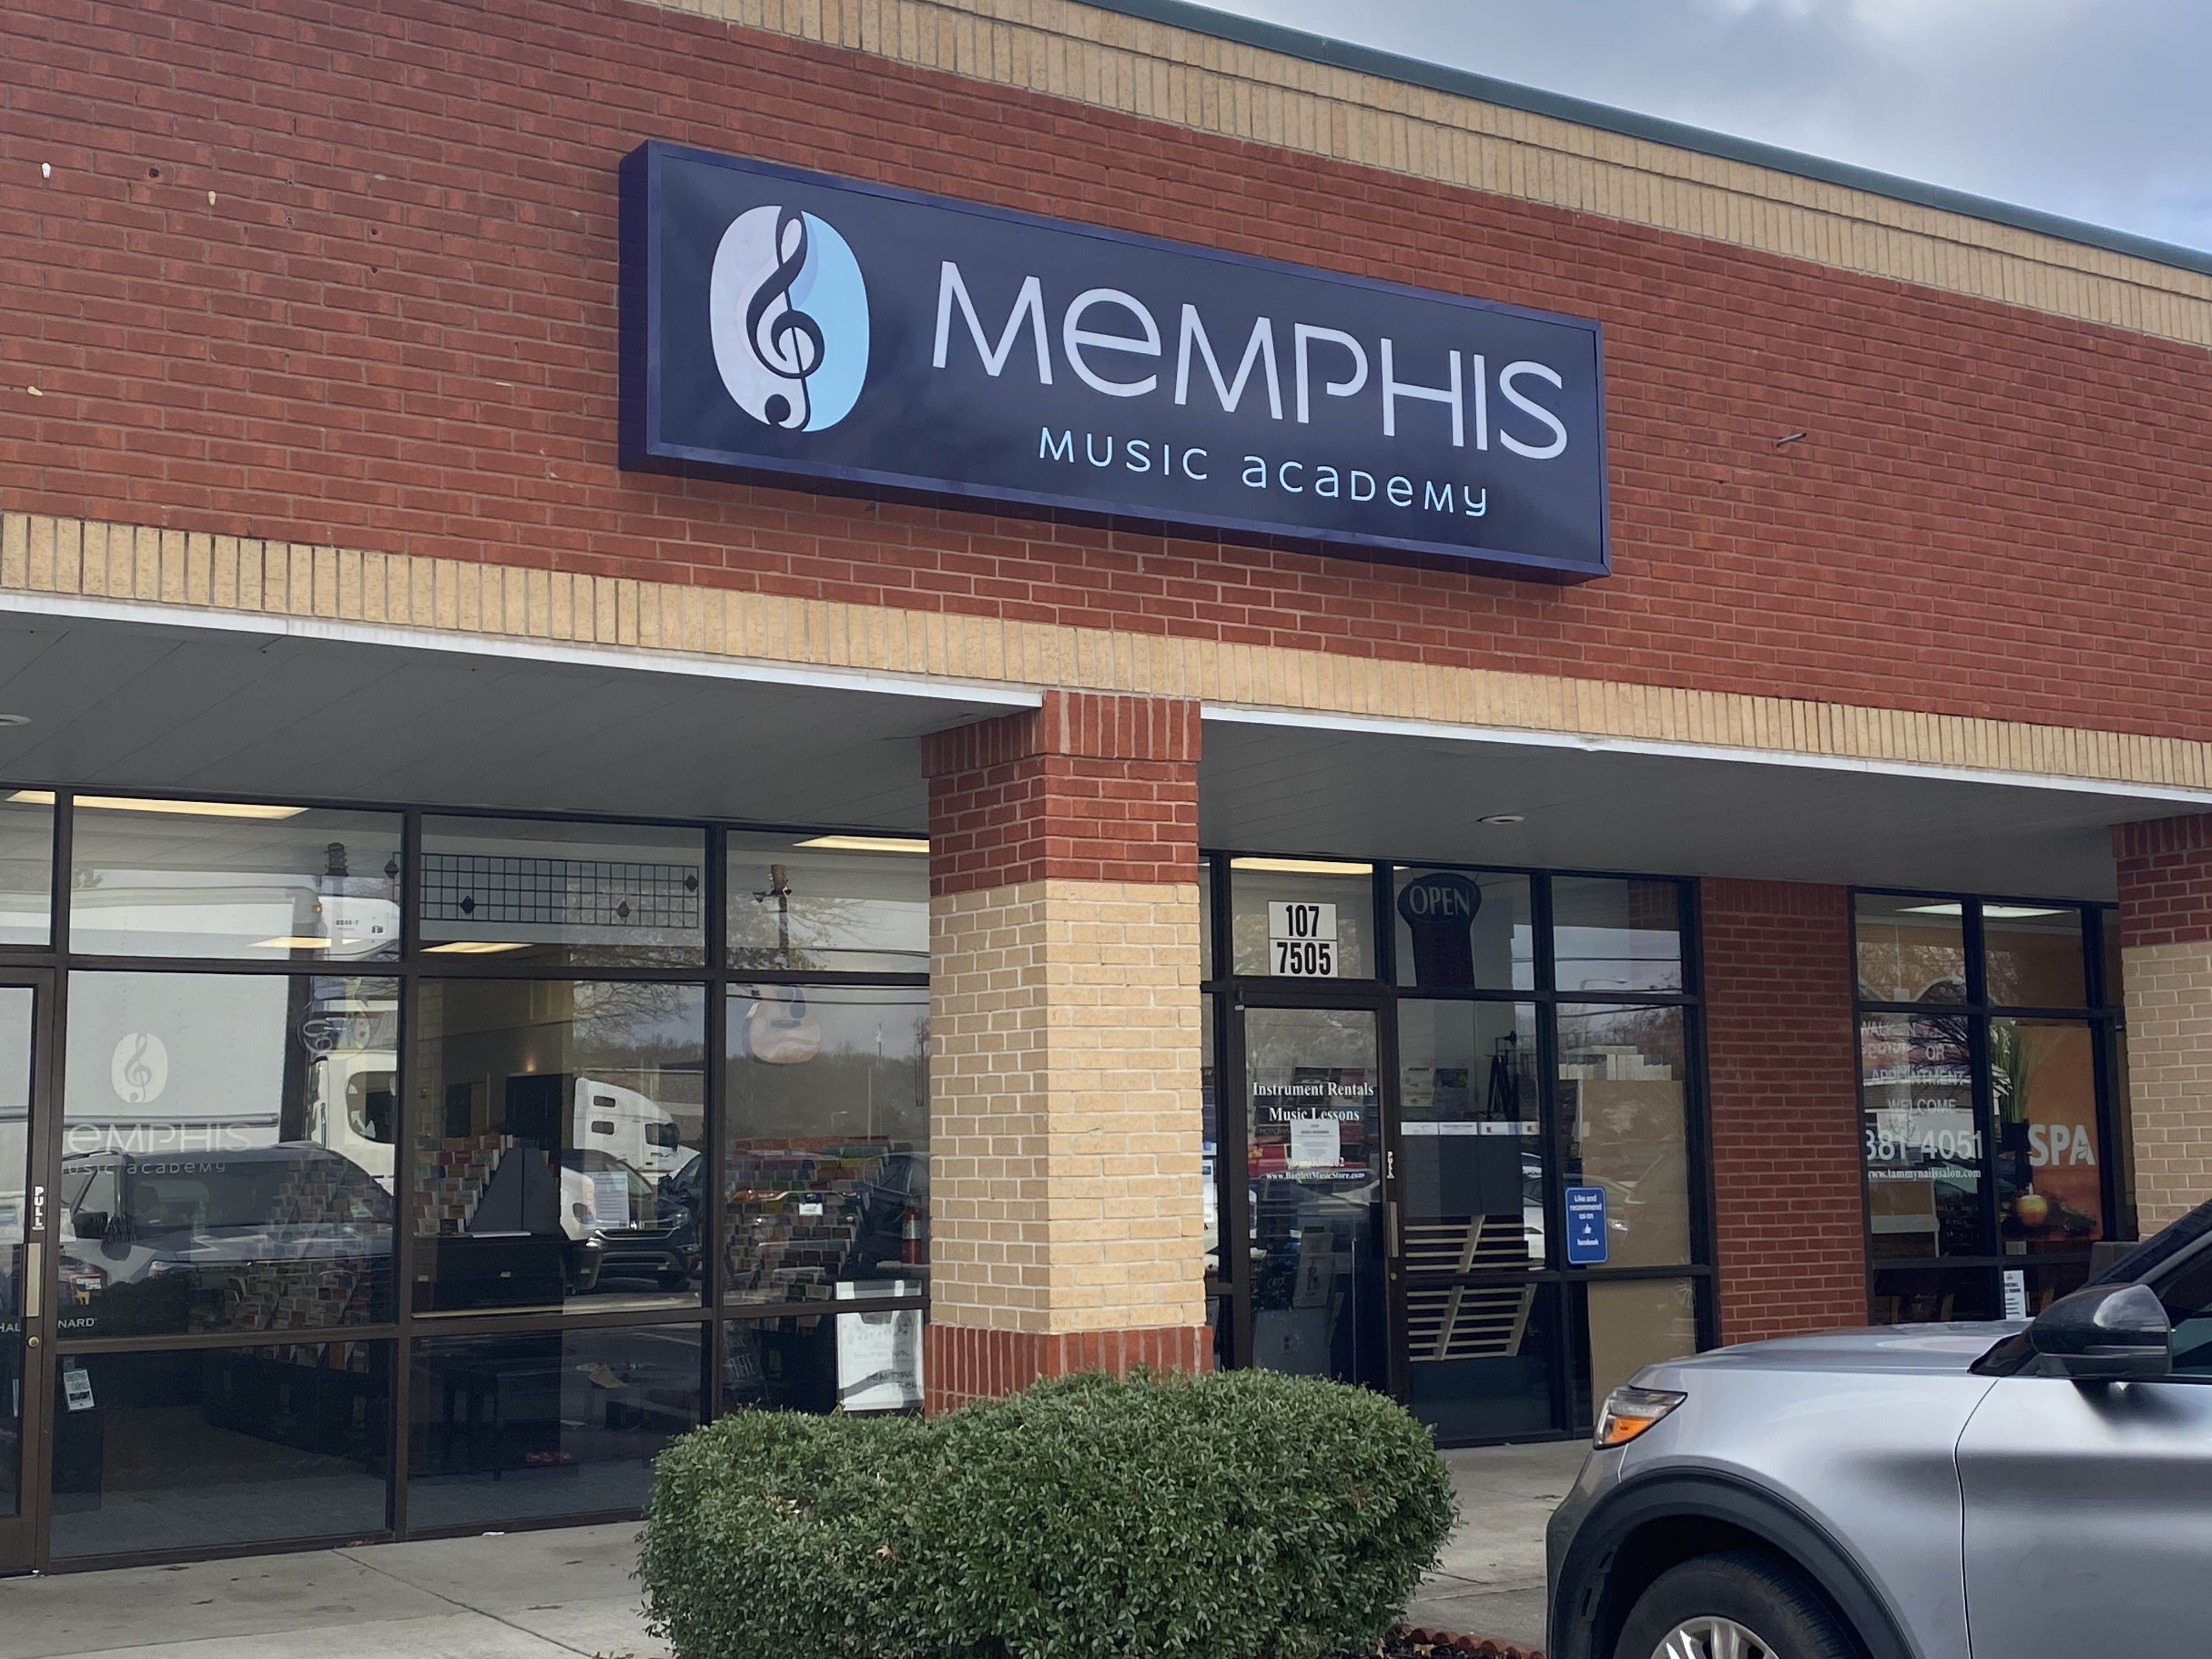 Exterior photo of the Memphis Music Academy building,